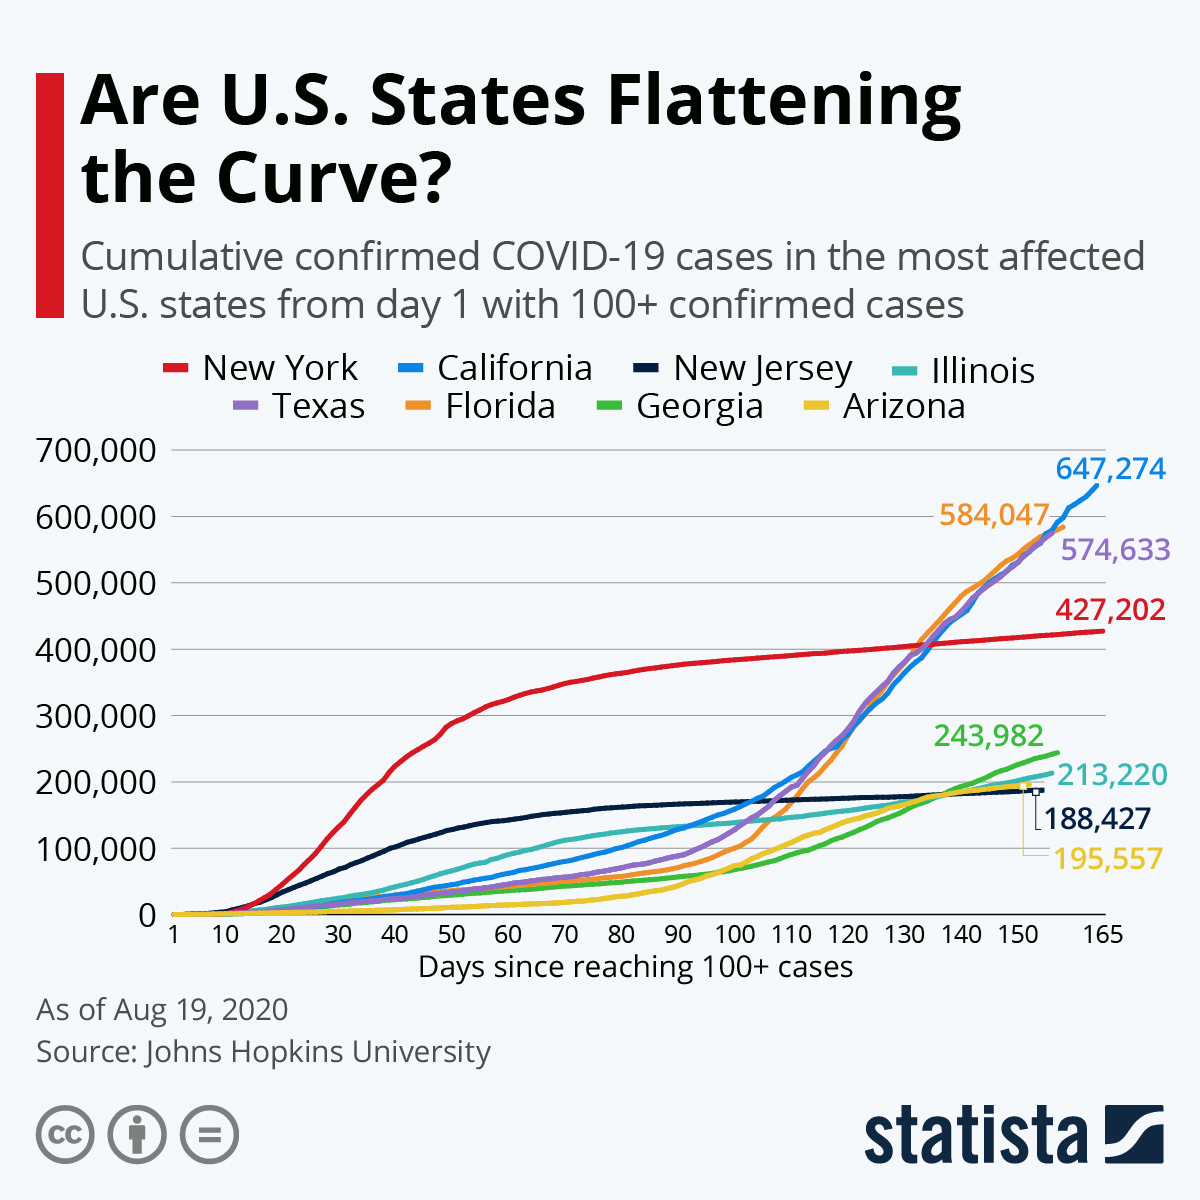 'Are U.S. States Flattening the Curve?' Cumulative confirmed COVID-19 cases in selected U.S. states from day 1 with 100+ confirmed cases. Multicolored line chart, usually updated weekly.